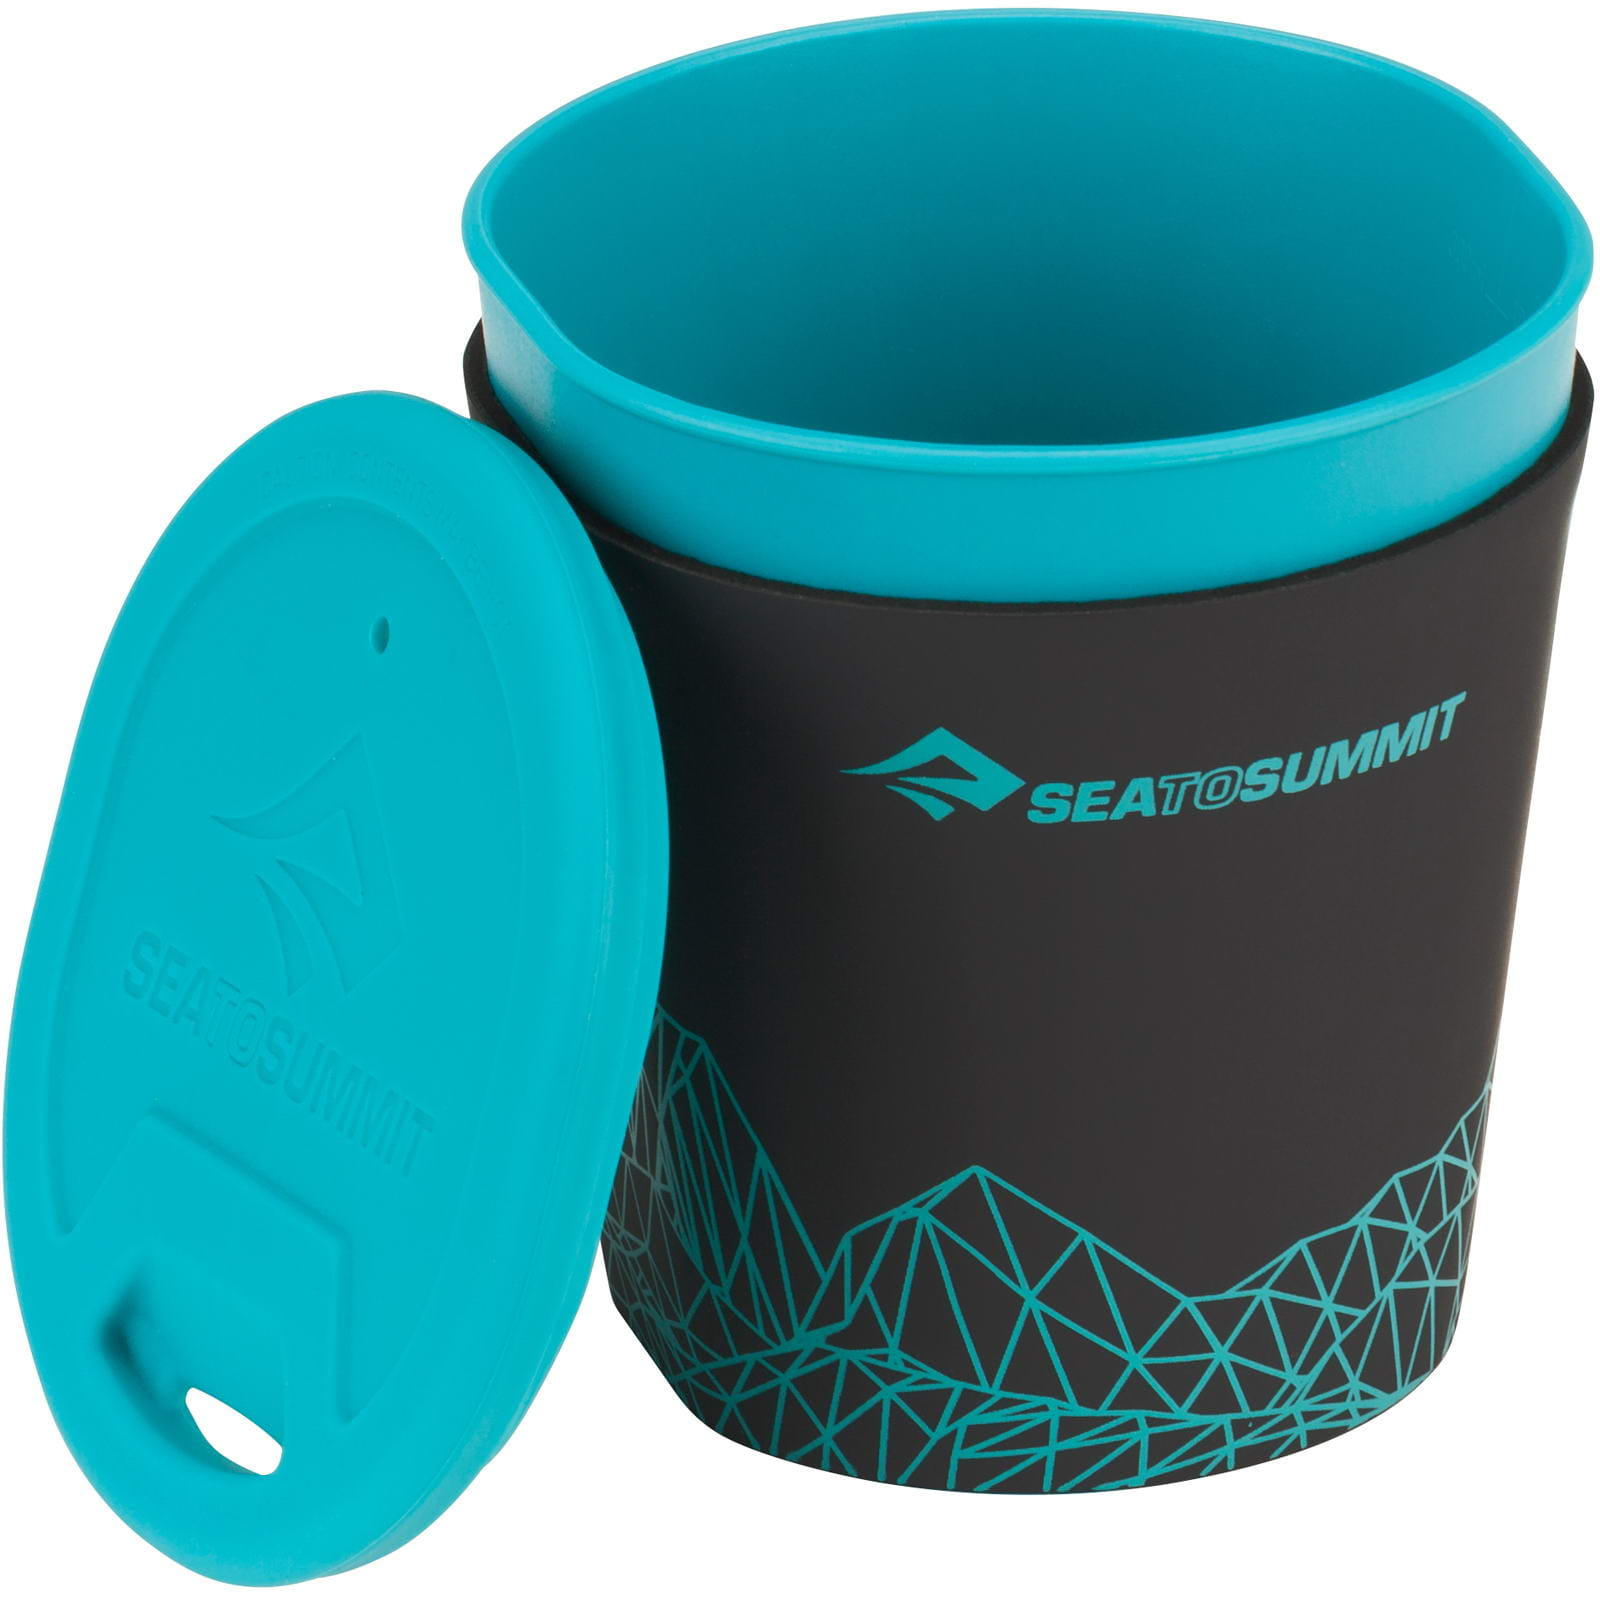 Sea to Summit DeltaLite Insul Mug - Thermobecher pacific blue - Bild 1